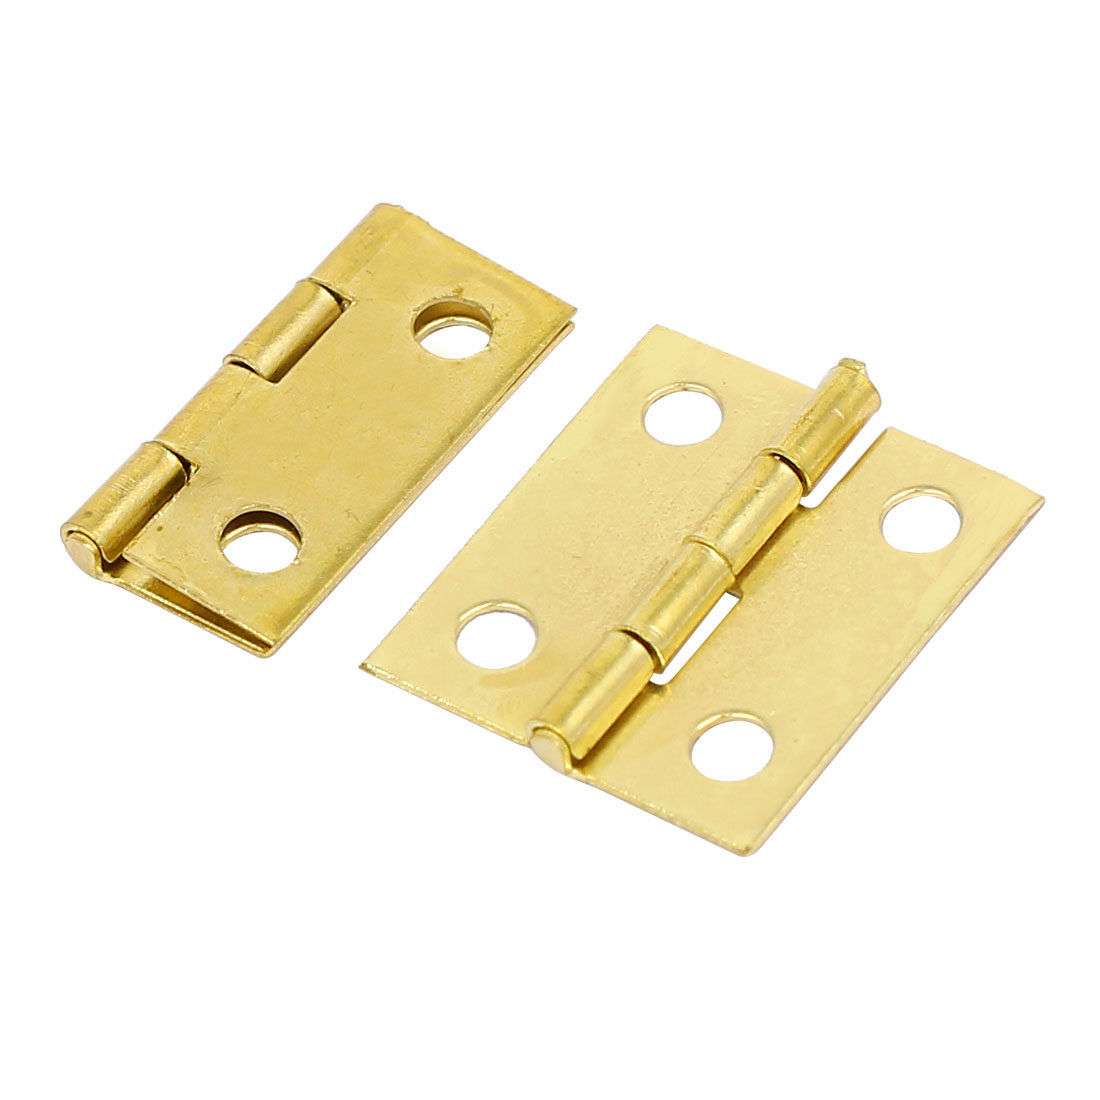 Jewelry Gift Box Wood Case Butt Hinges Gold Tone 18mm Length 2PCS